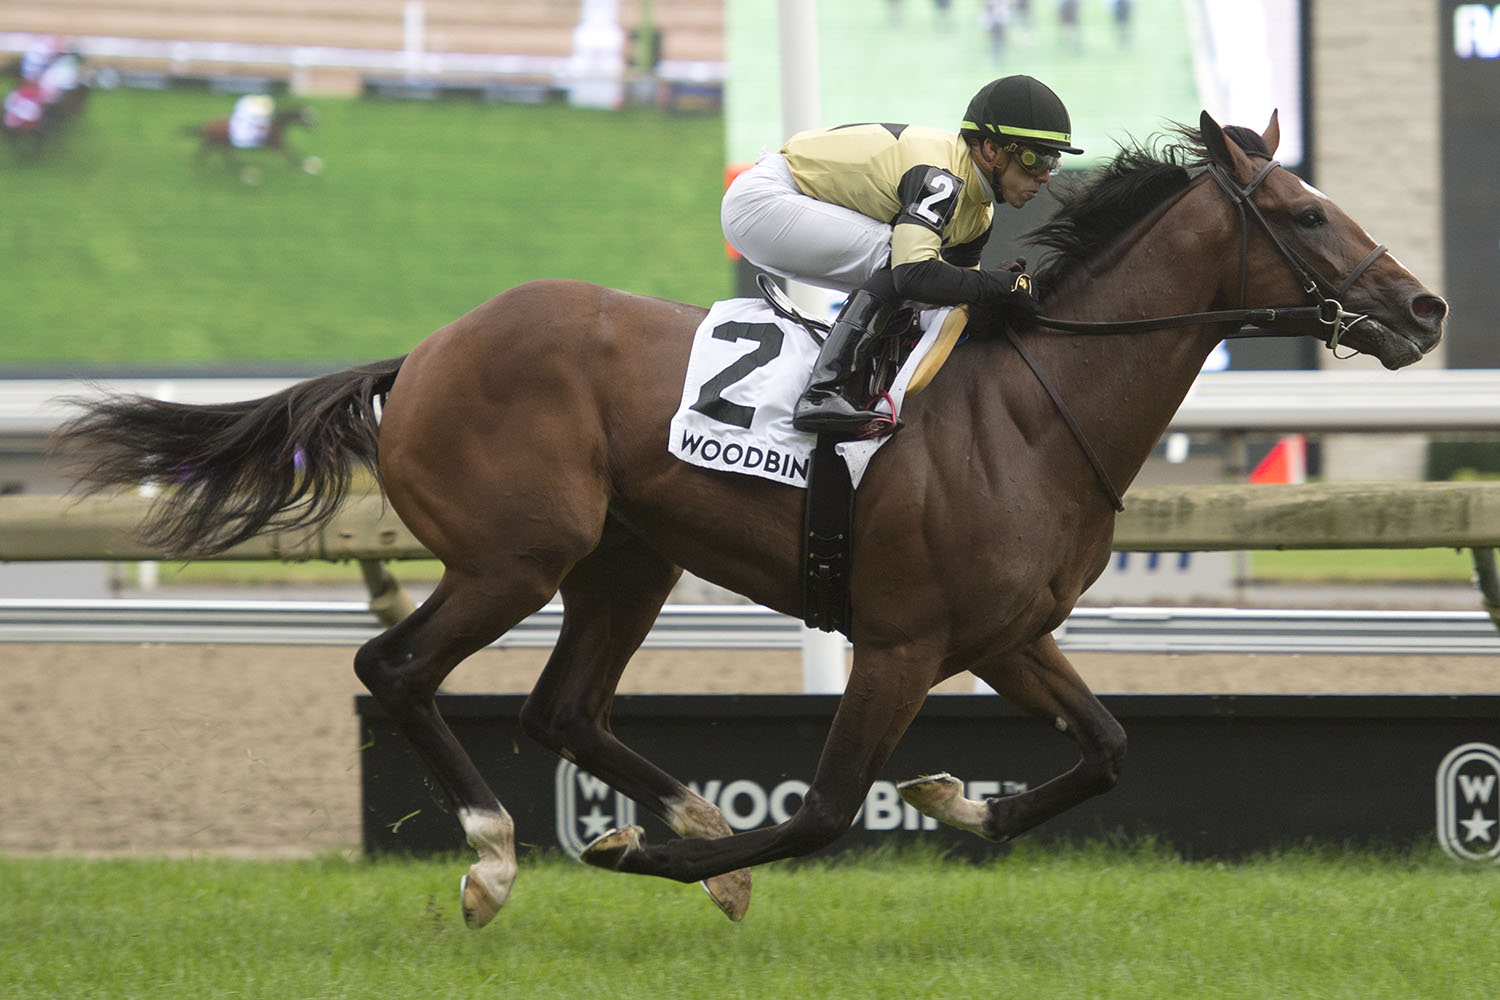 Decorated Invader comes to Woodbine, takes Summer Stakes crown